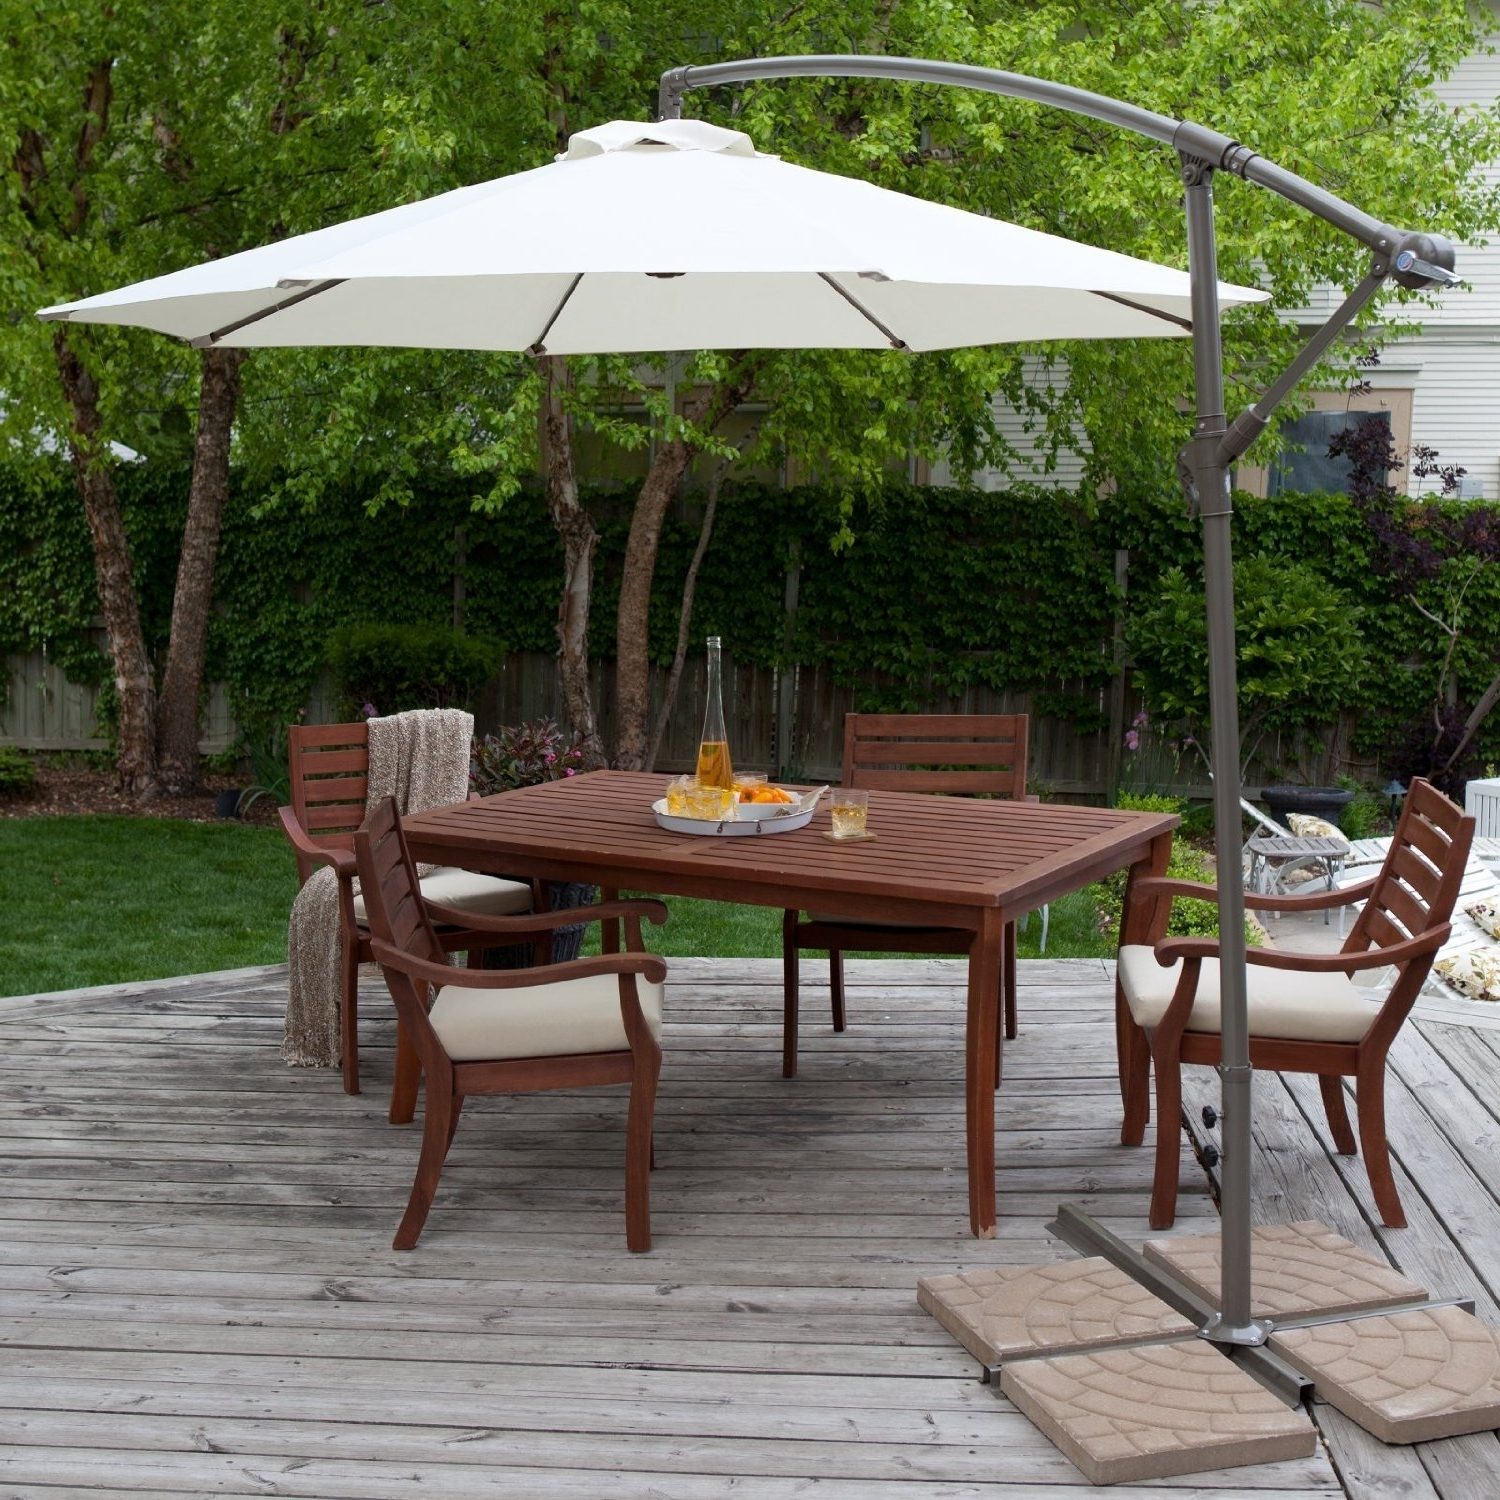 Recent Patio Umbrellas With Table With Round White Fabric Patio Umbrella With Black Base Over Dark Brown (View 18 of 20)